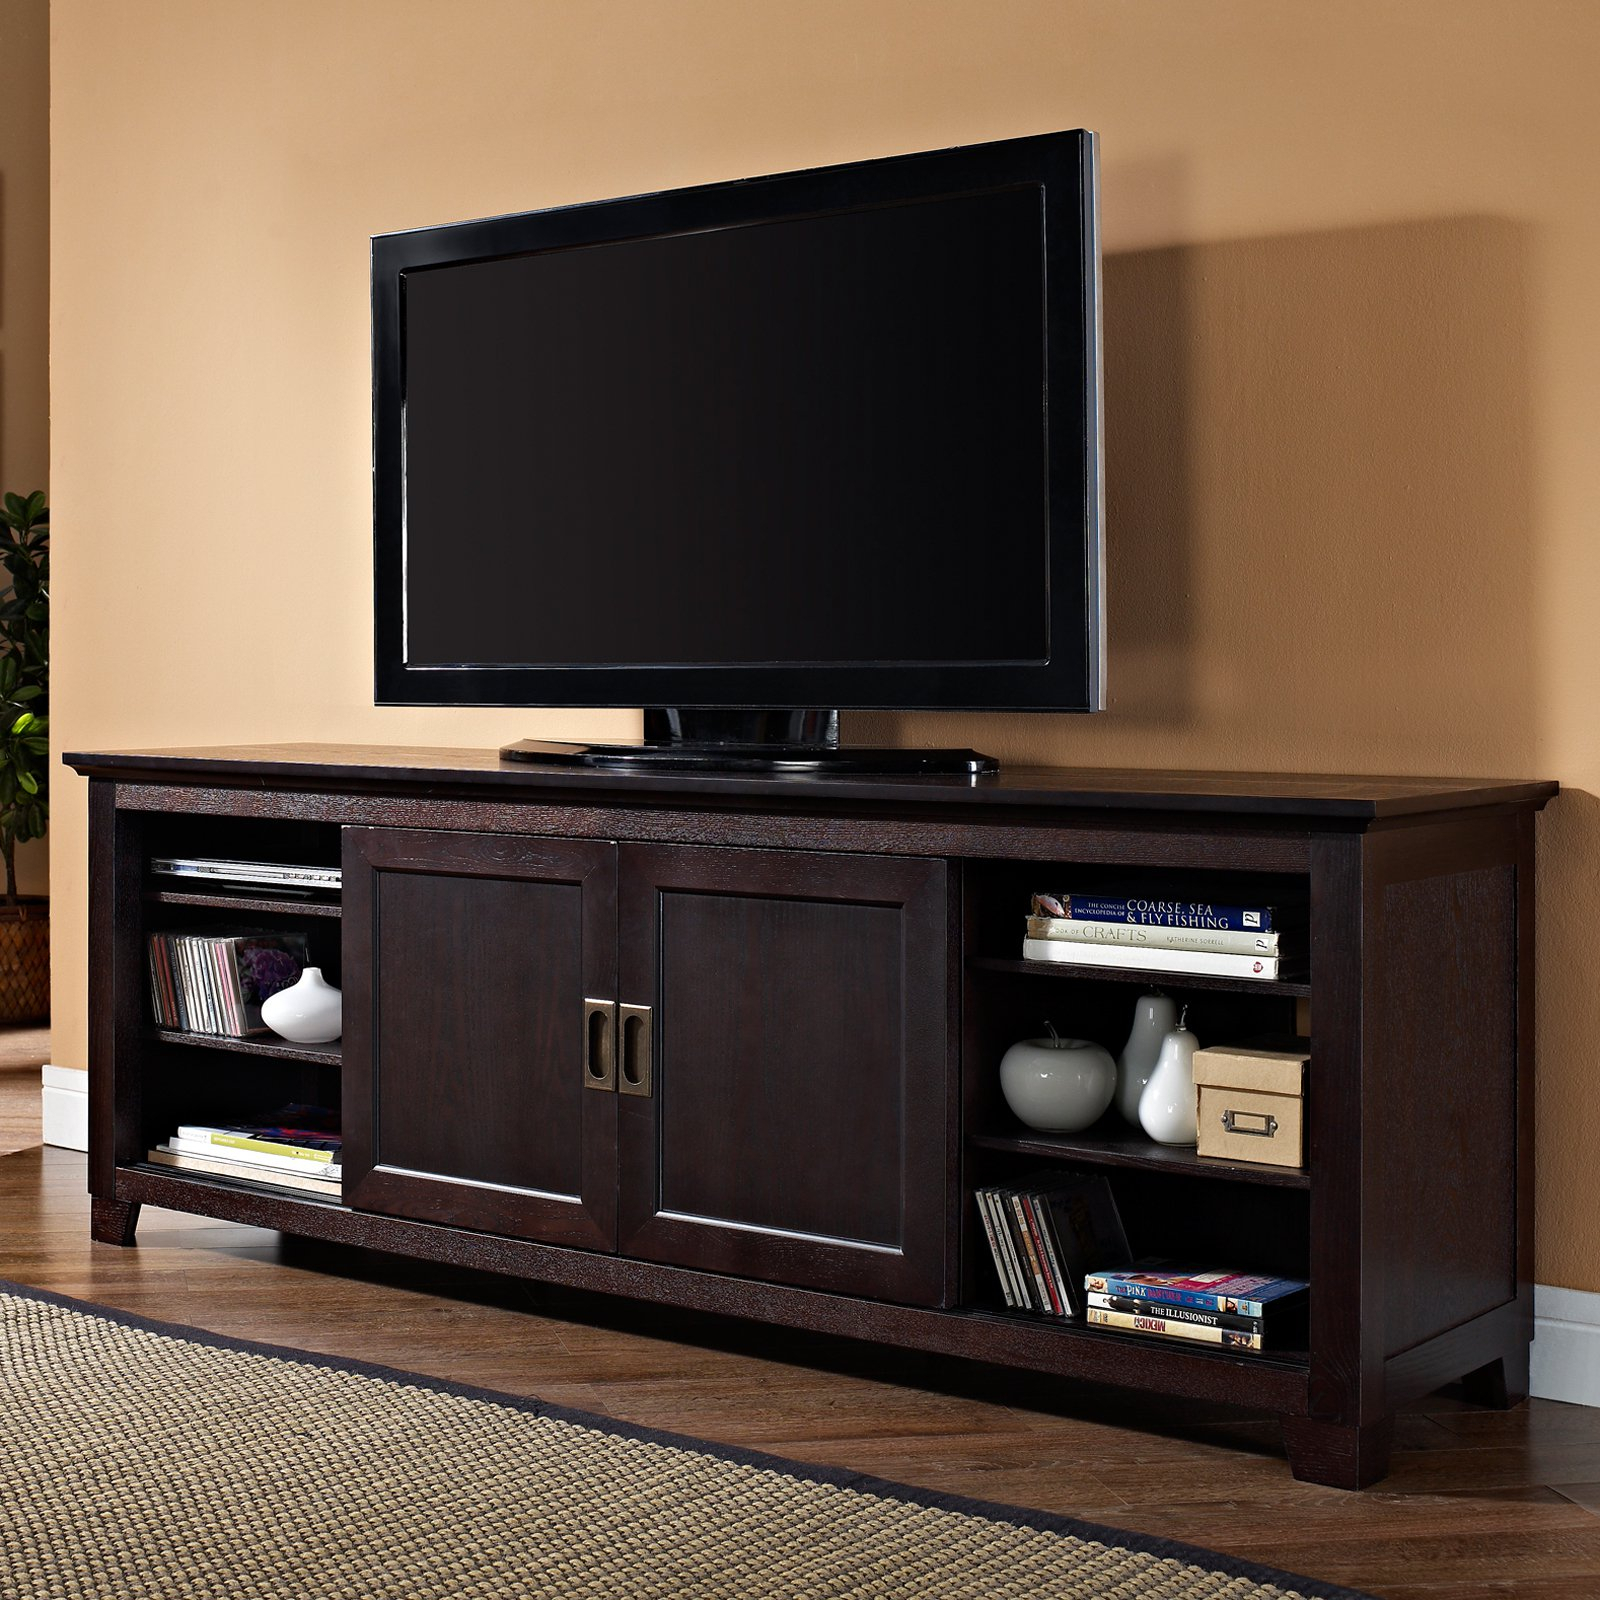 Corner Tv Stands For 70 Inch Tvs - Corner Designs pertaining to Annabelle Black 70 Inch Tv Stands (Image 12 of 30)